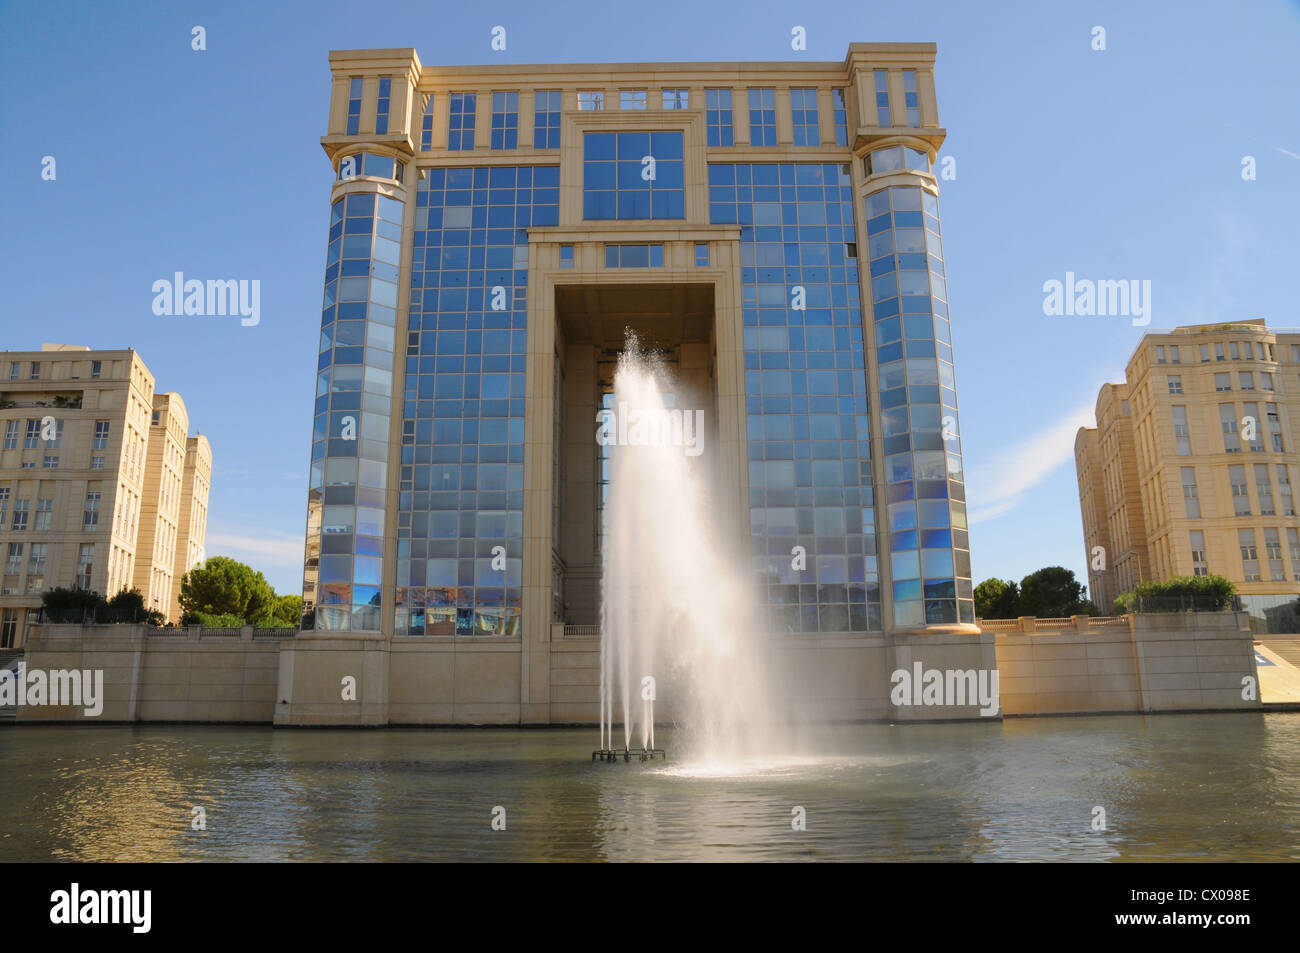 Modern Architecture France montpellier france, modern architecture stock photo, royalty free